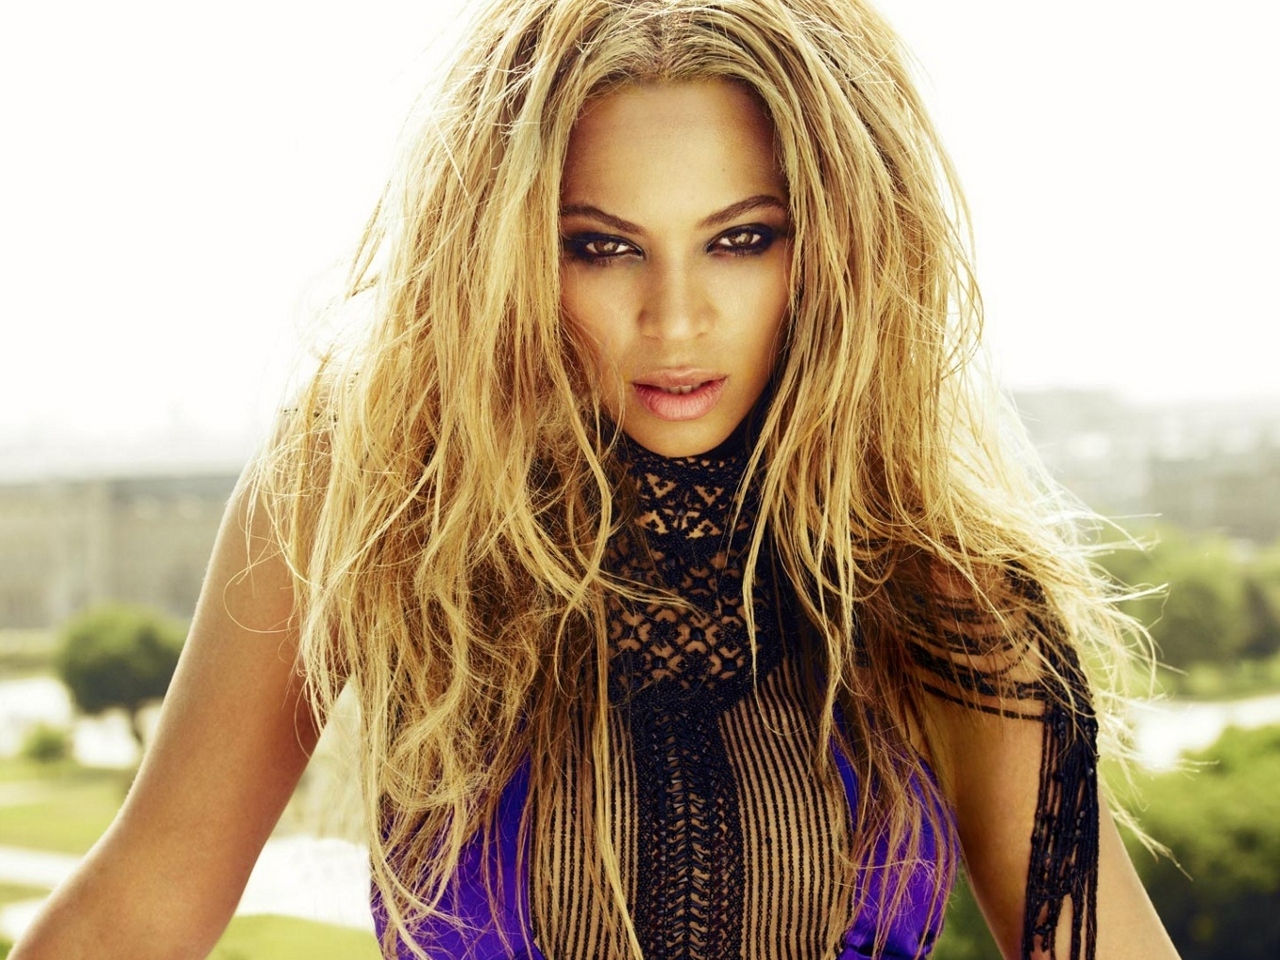 Hot Photoshoots Of Beyonce - Hot Photoshoots Of Beyonce